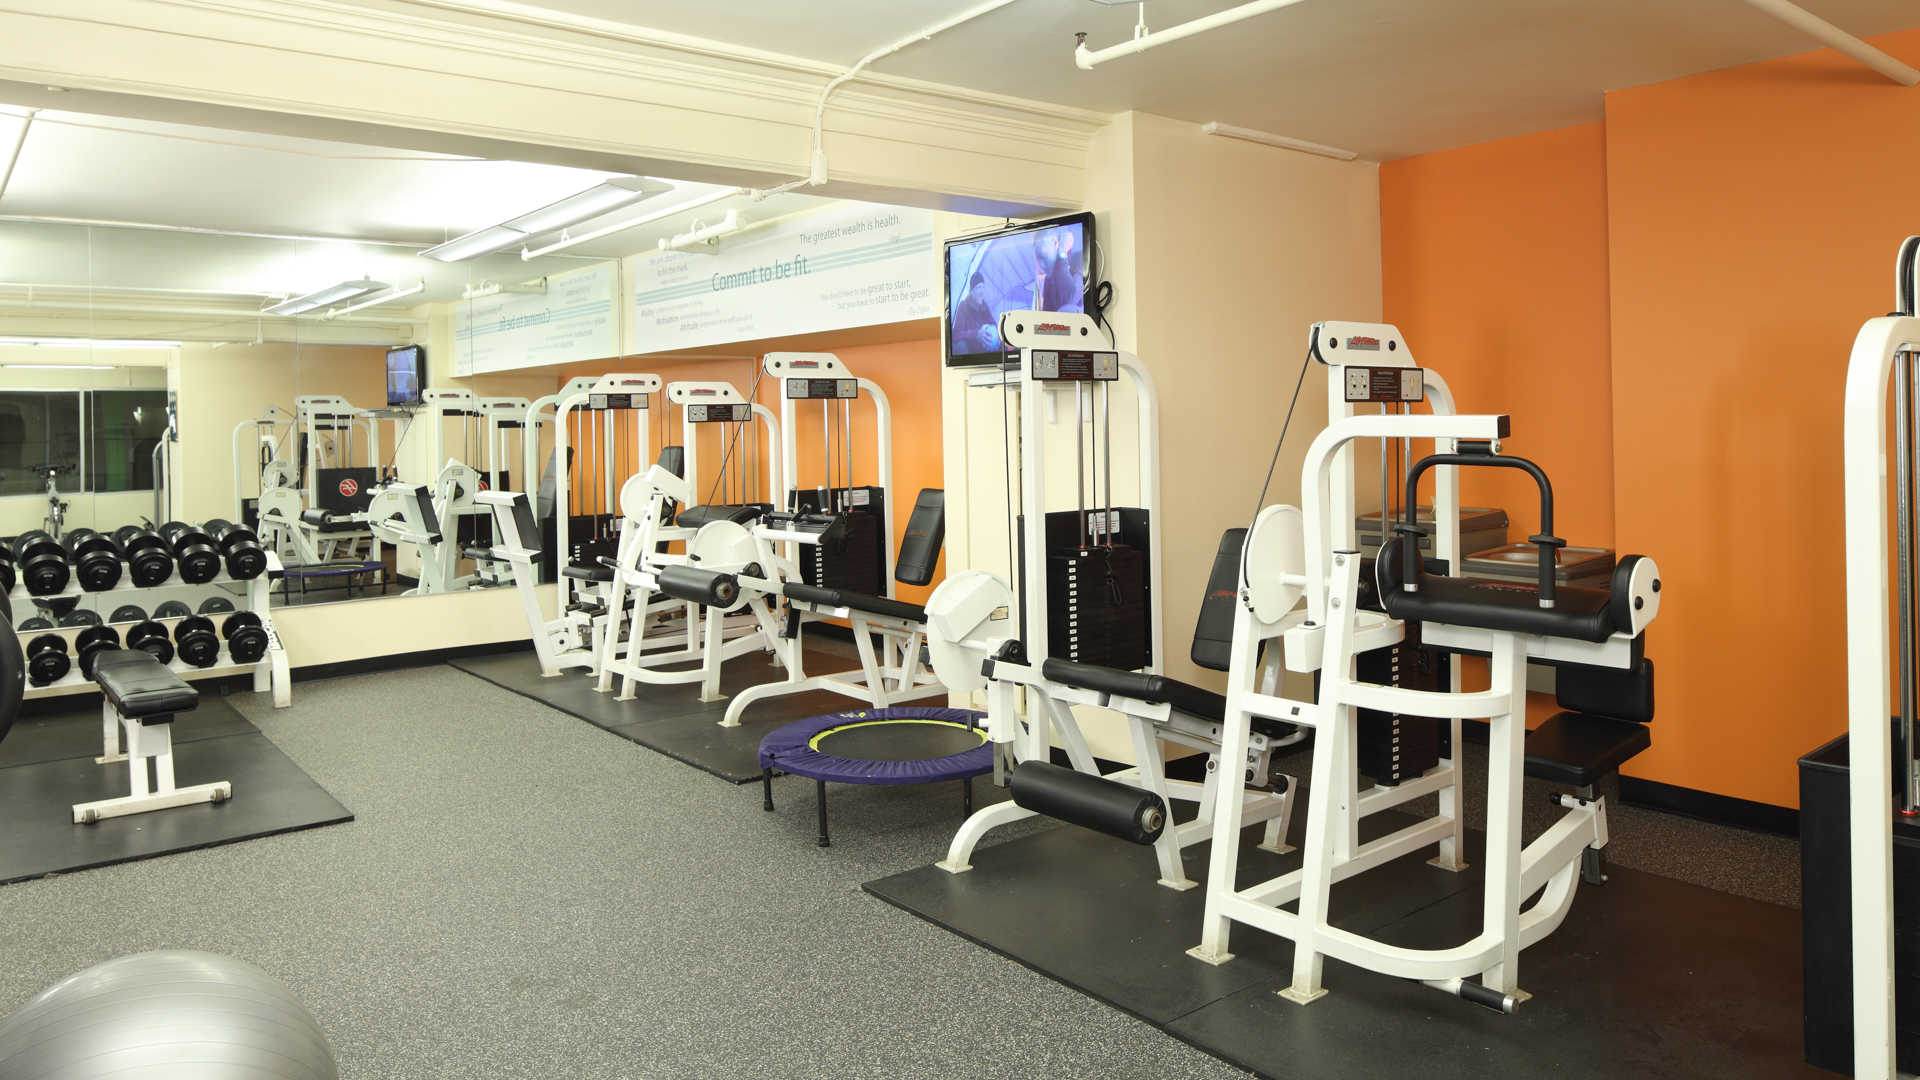 71 broadway apartments fitness center